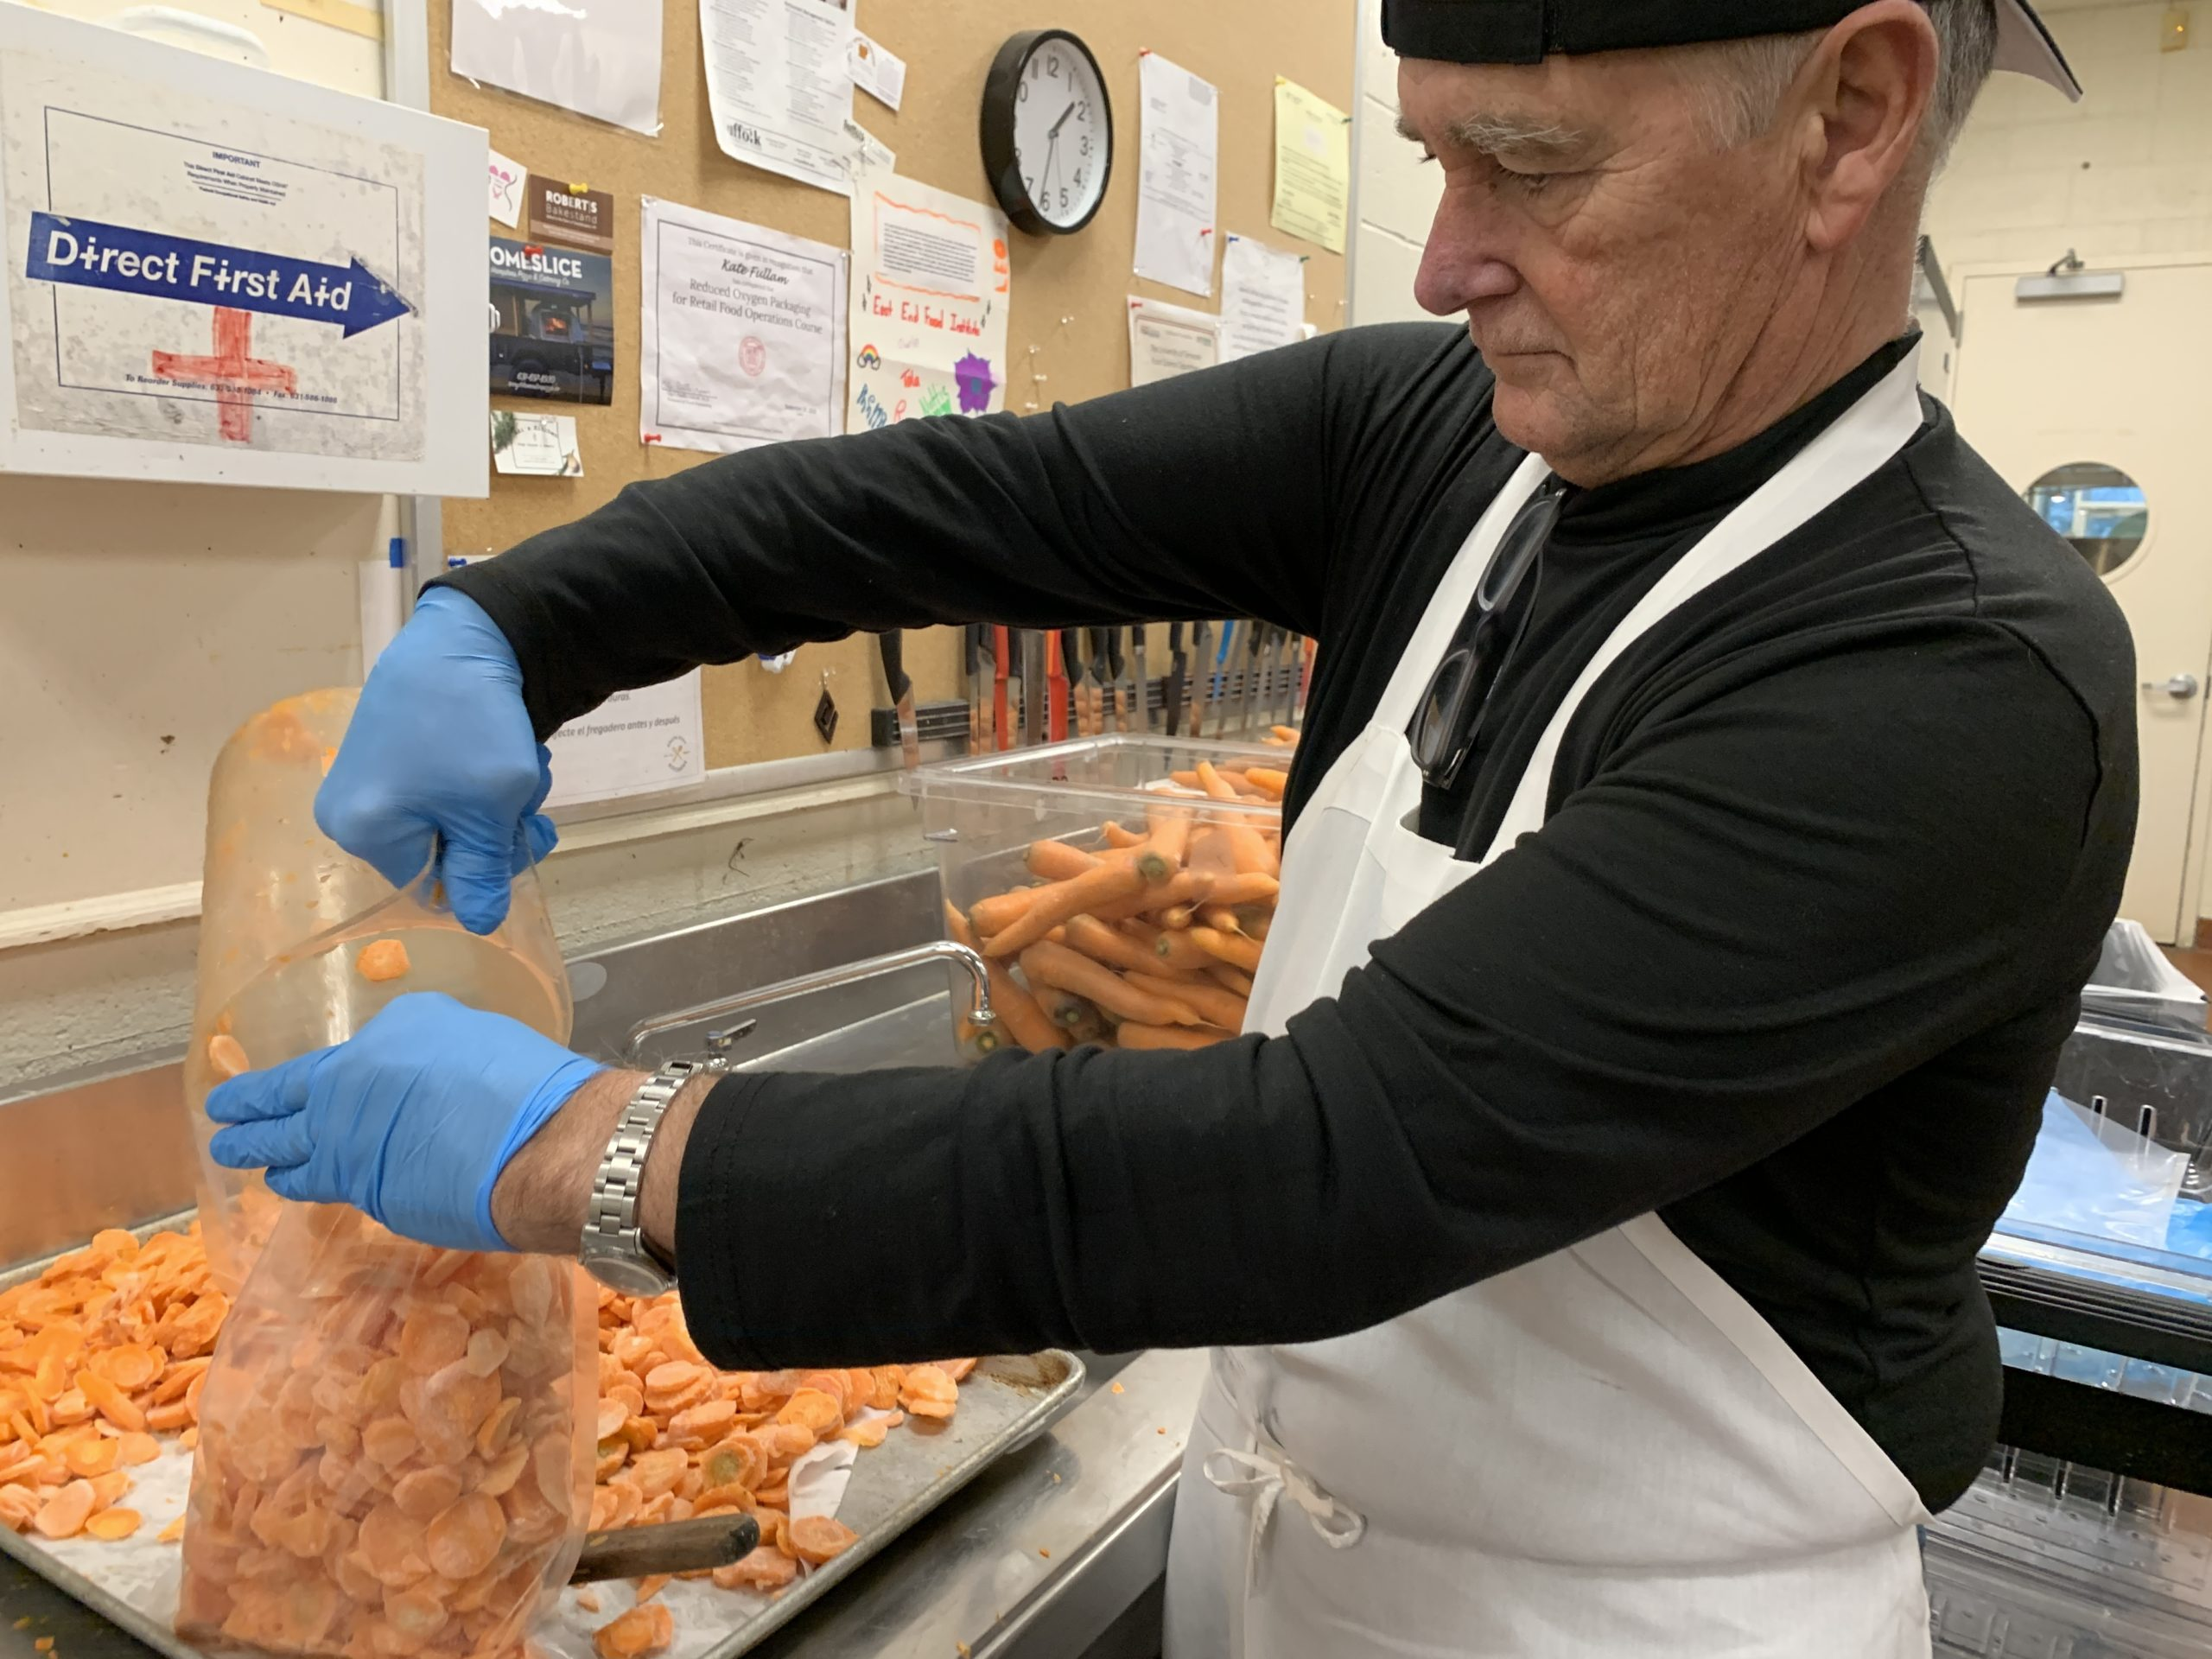 Volunteers helped wash, peel, chop and freeze 1,600 pounds of carrots to be sent to a food bank. Michael Ferran packed the frozen carrots into plastic bags to be vacuum sealed. KIM COVELL